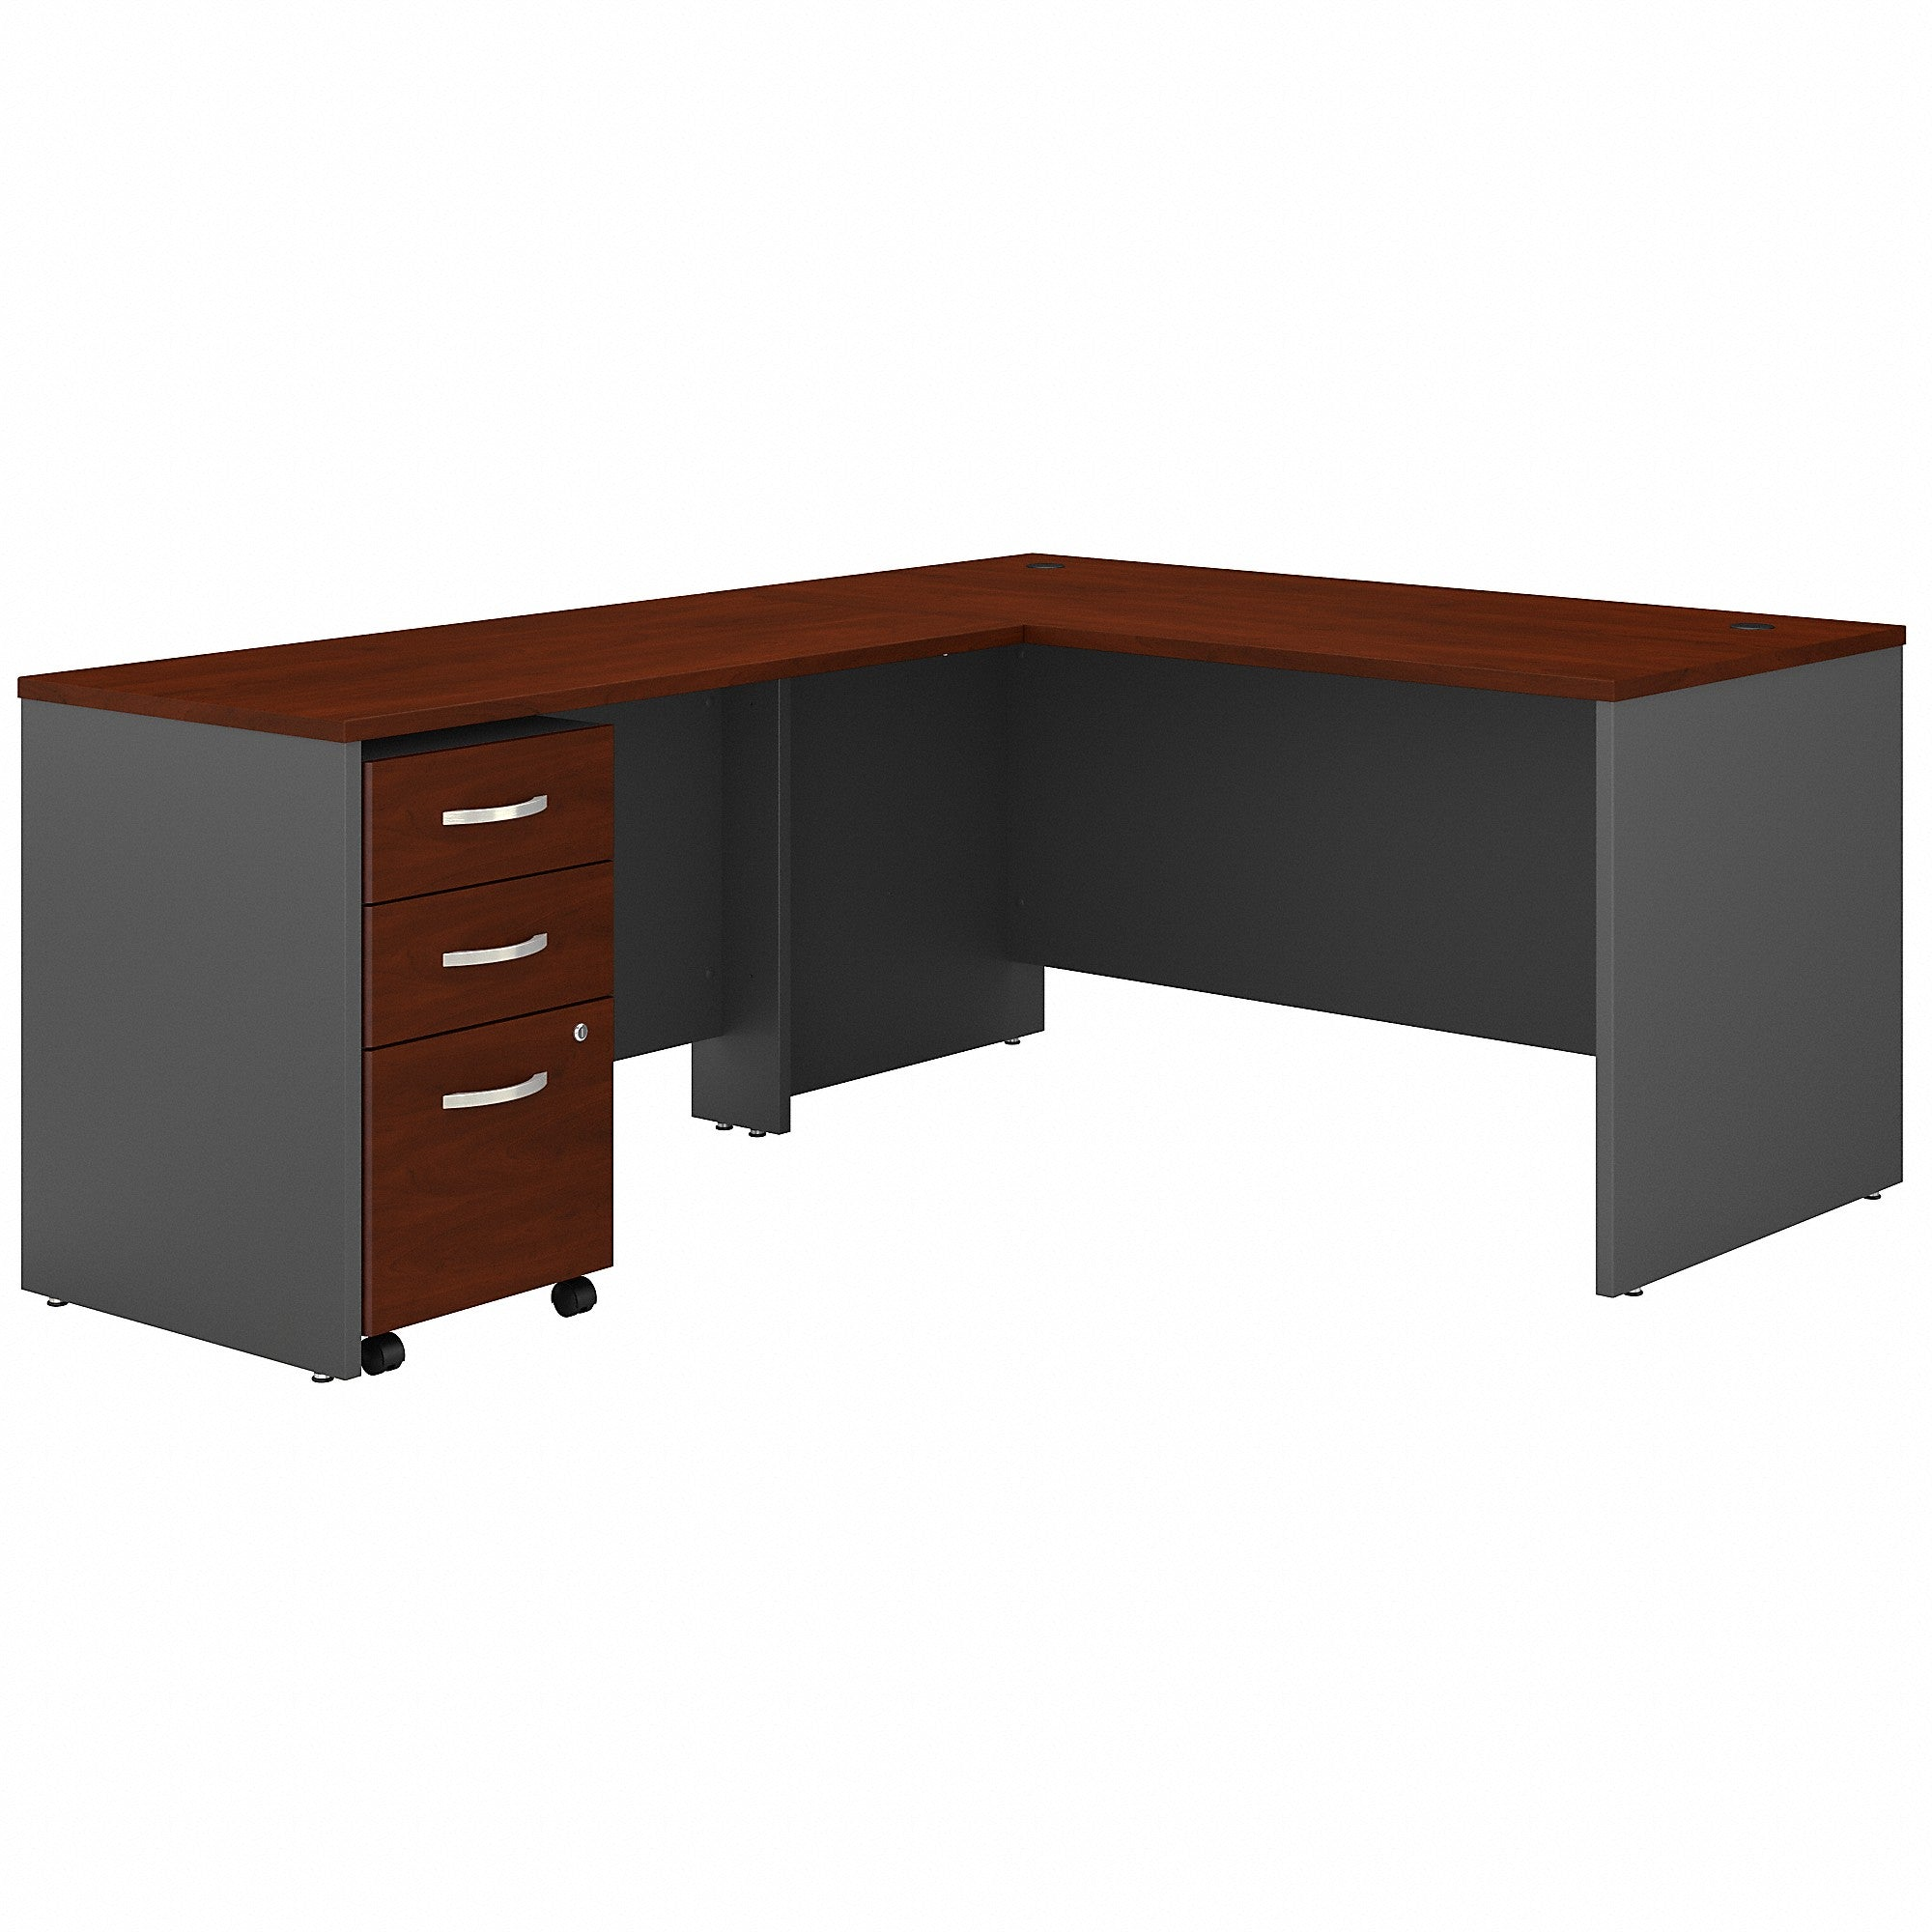 Series C 60W L Shaped Desk with 3 Drawer Mobile File Cabinet